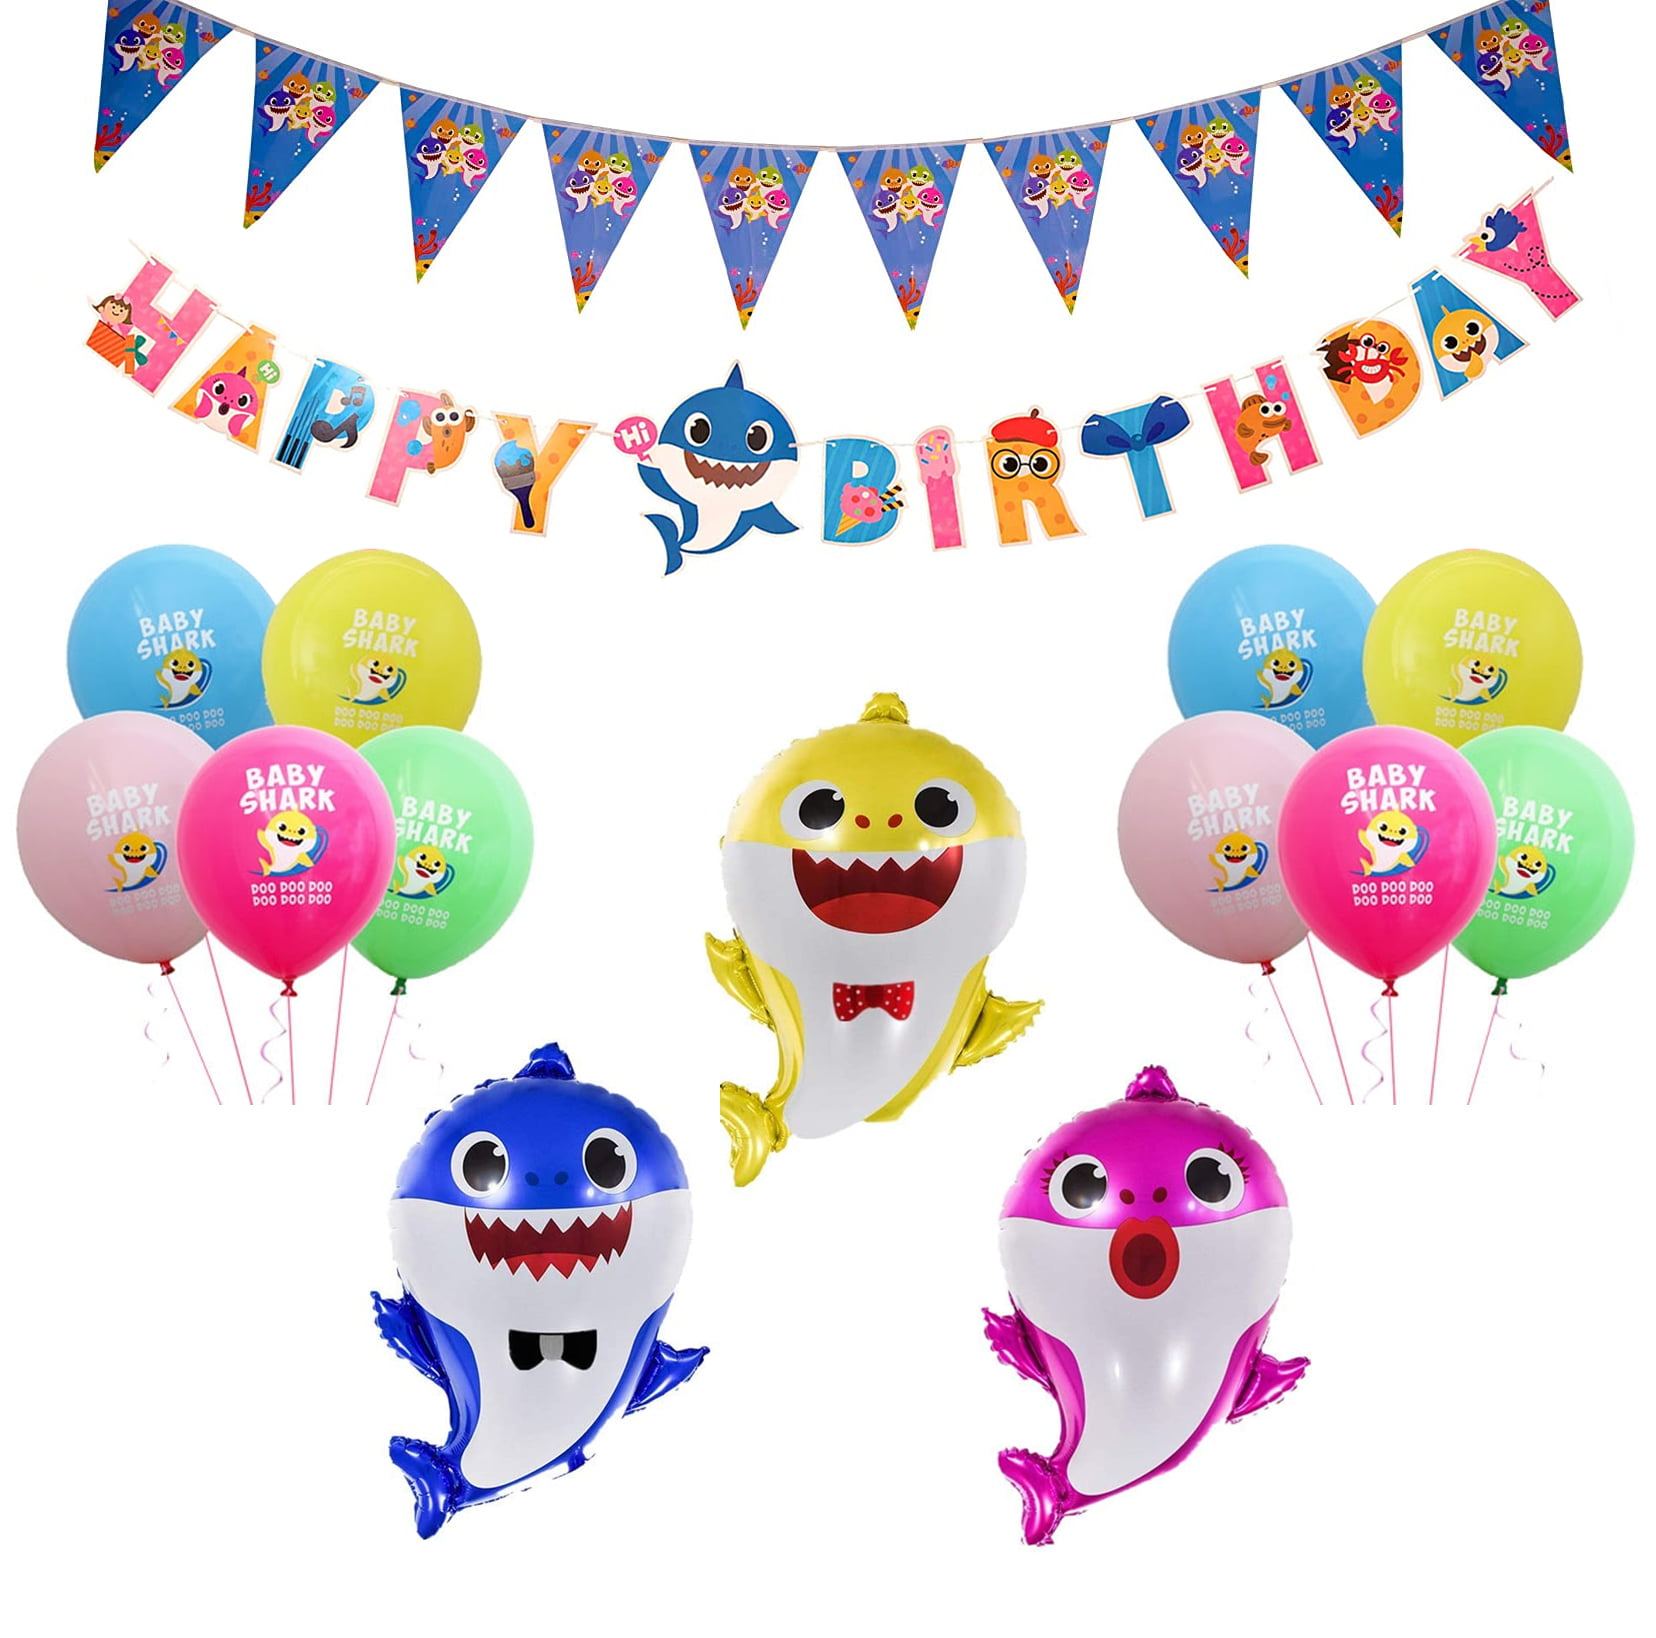 Baby Shark Theme Birthday Decoration Kit For Kids 15pcs Boys Girl Babies Toddlers Bday Decorations Materials High Quality Foil Balloons Happy Birthday Banner Penant Banner Unique Items Party Propz Online Party